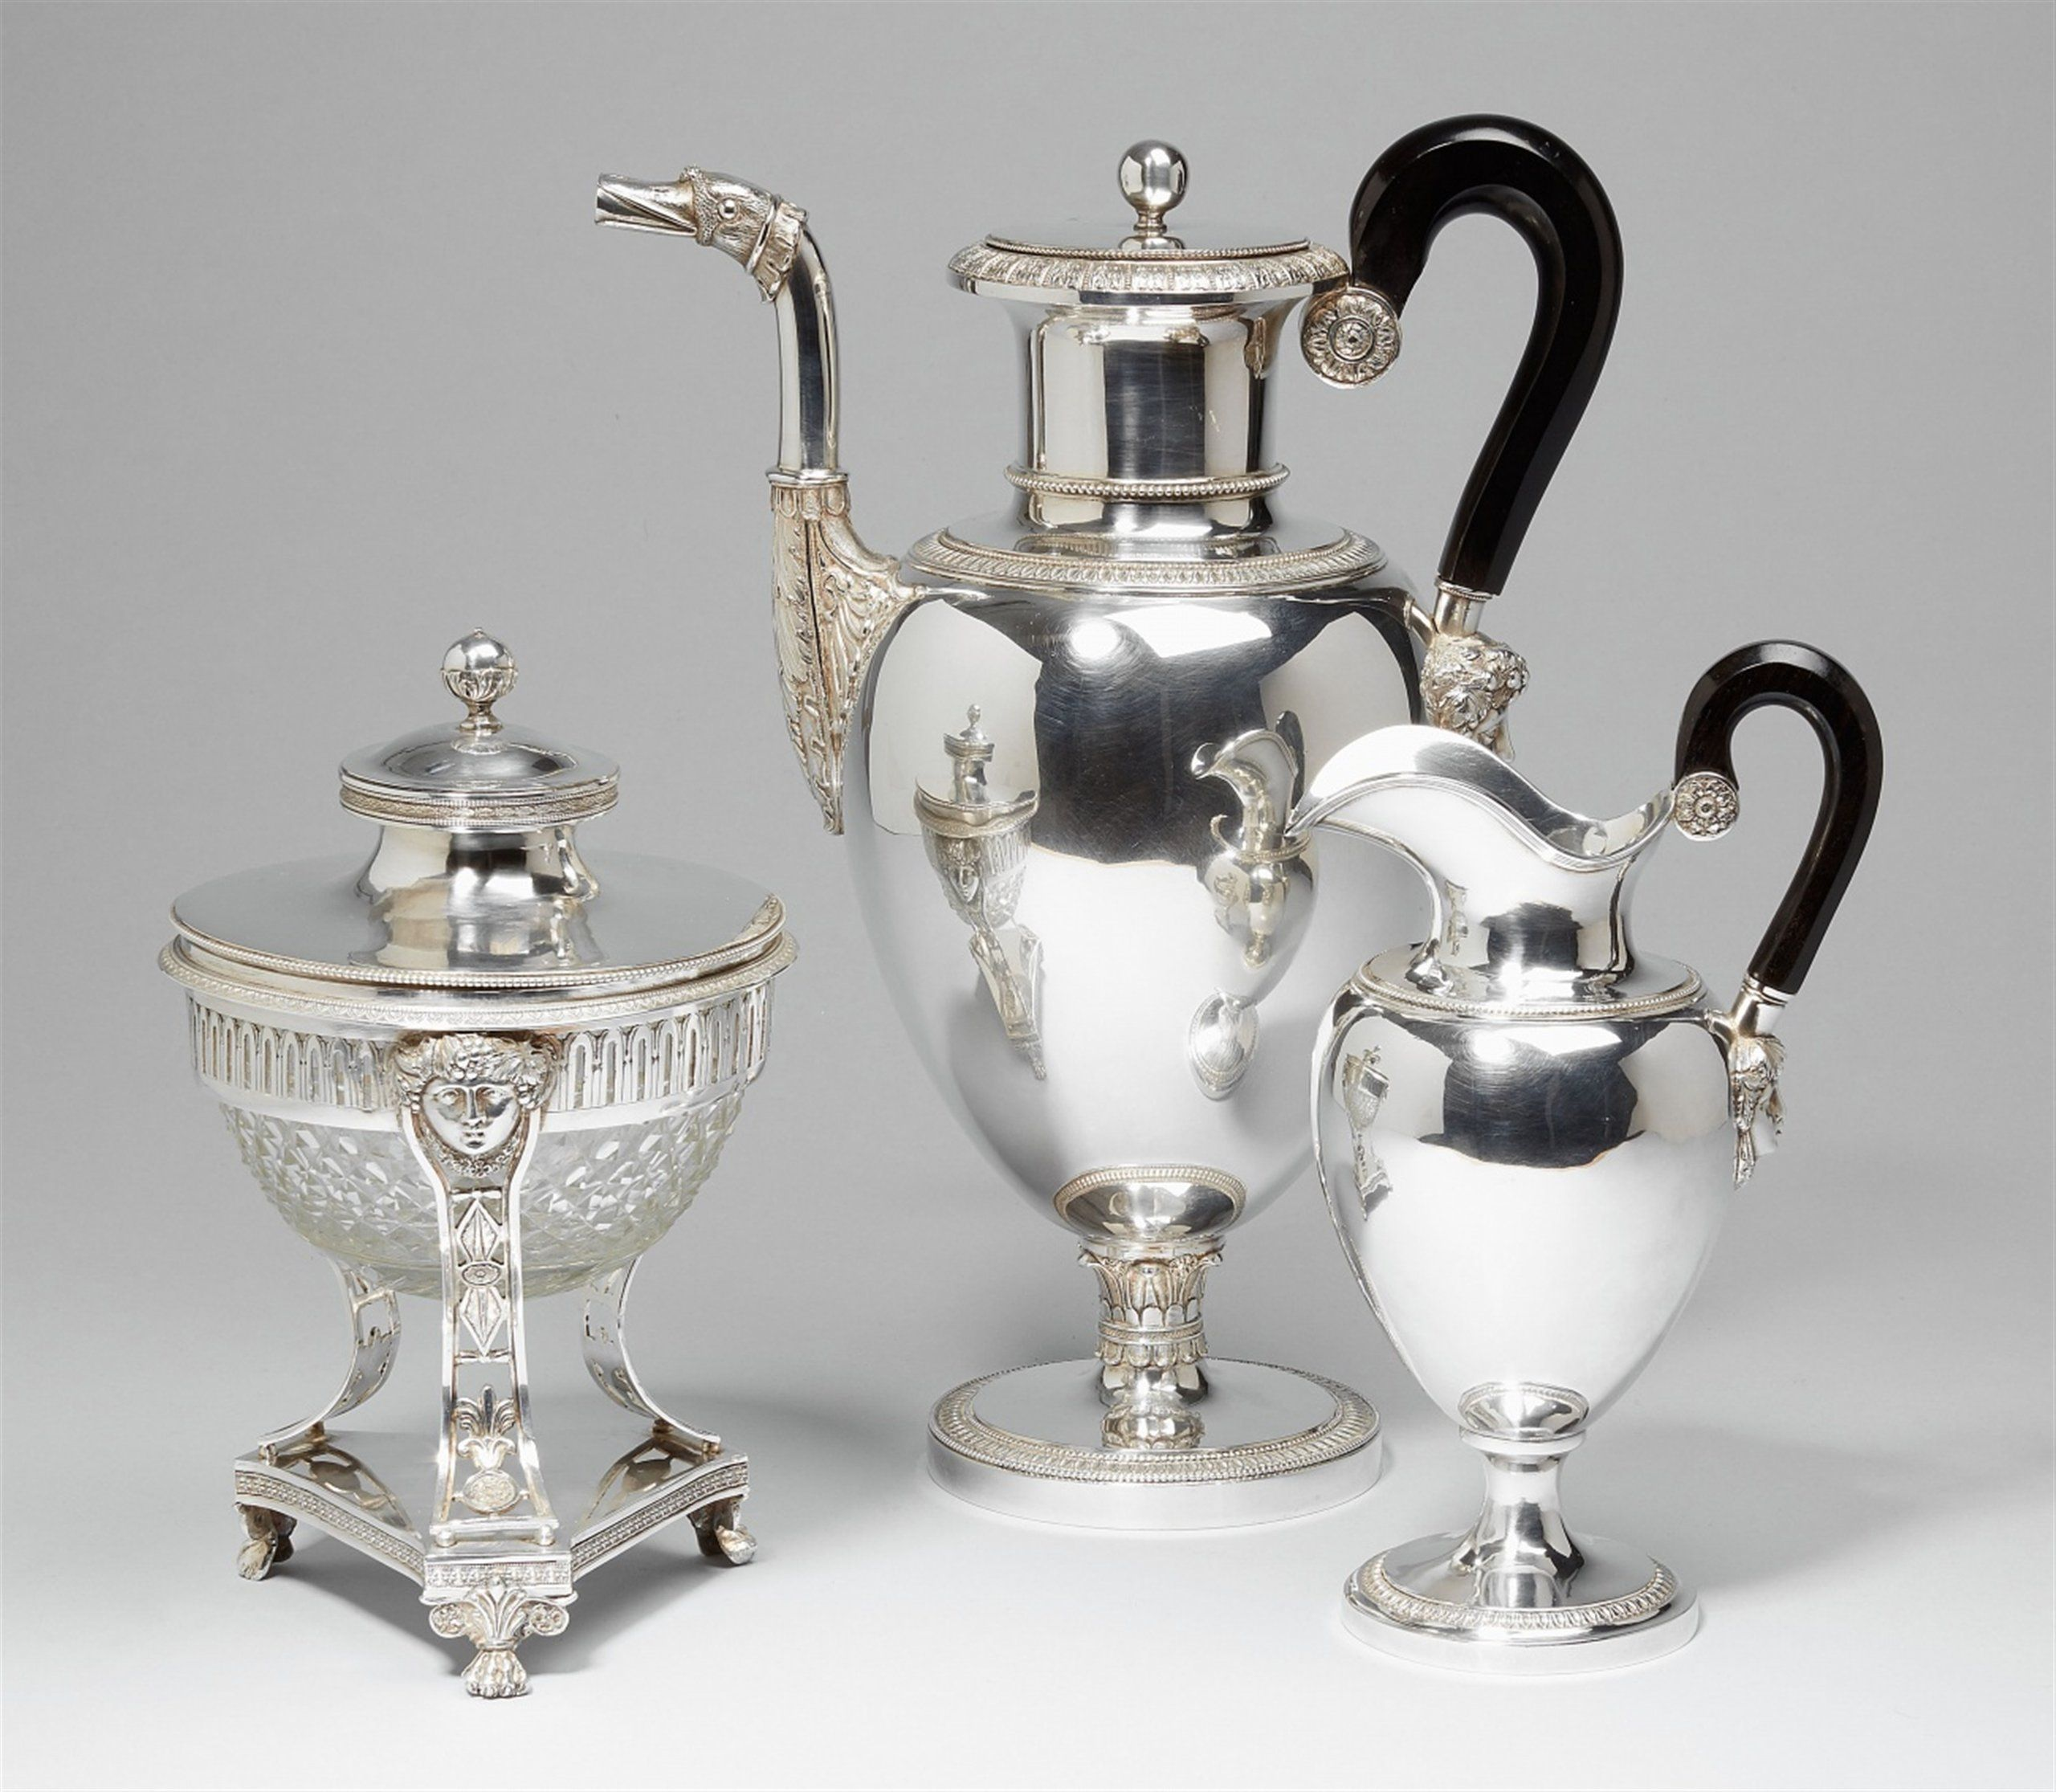 c1830 A neoclassical Brussels silver coffee service